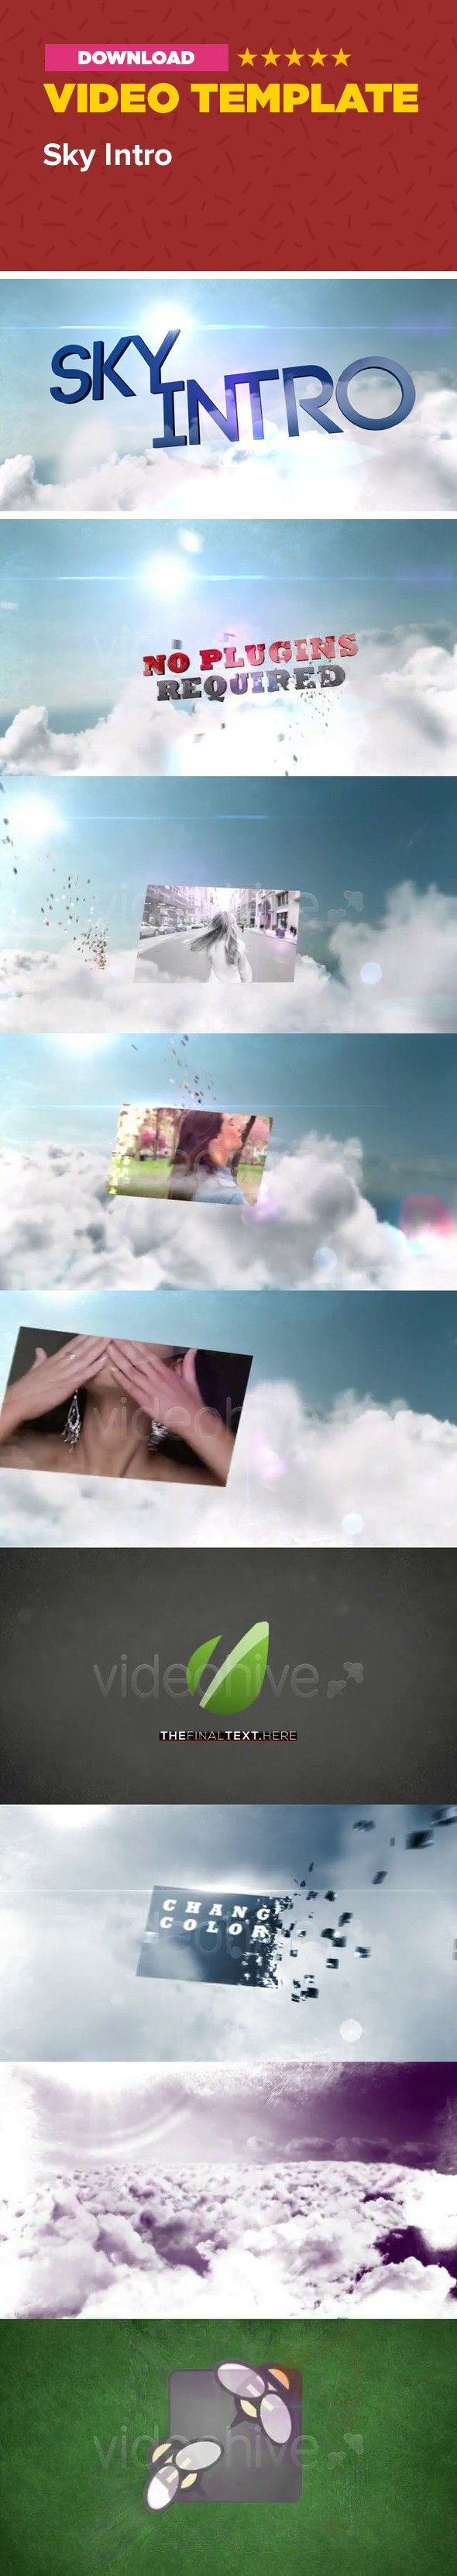 3d, beam, blue, cloud, expanse, flash, heaven, horizon, lens flare, placeholder, reflection, sky, sun, title  Hi, dear colleagues!  The project can be easily customized and includes: three 3D-titles, five placeholders, Logo reveal with the final text, clouds textures (with alpha channel), No Plug-ins required; there are two AE templates: the fully editable and the prerendred ones – the render time is 2-3 hours for the prerendered version and 5-6 hours for the editable version (Core i7, 6Gb…